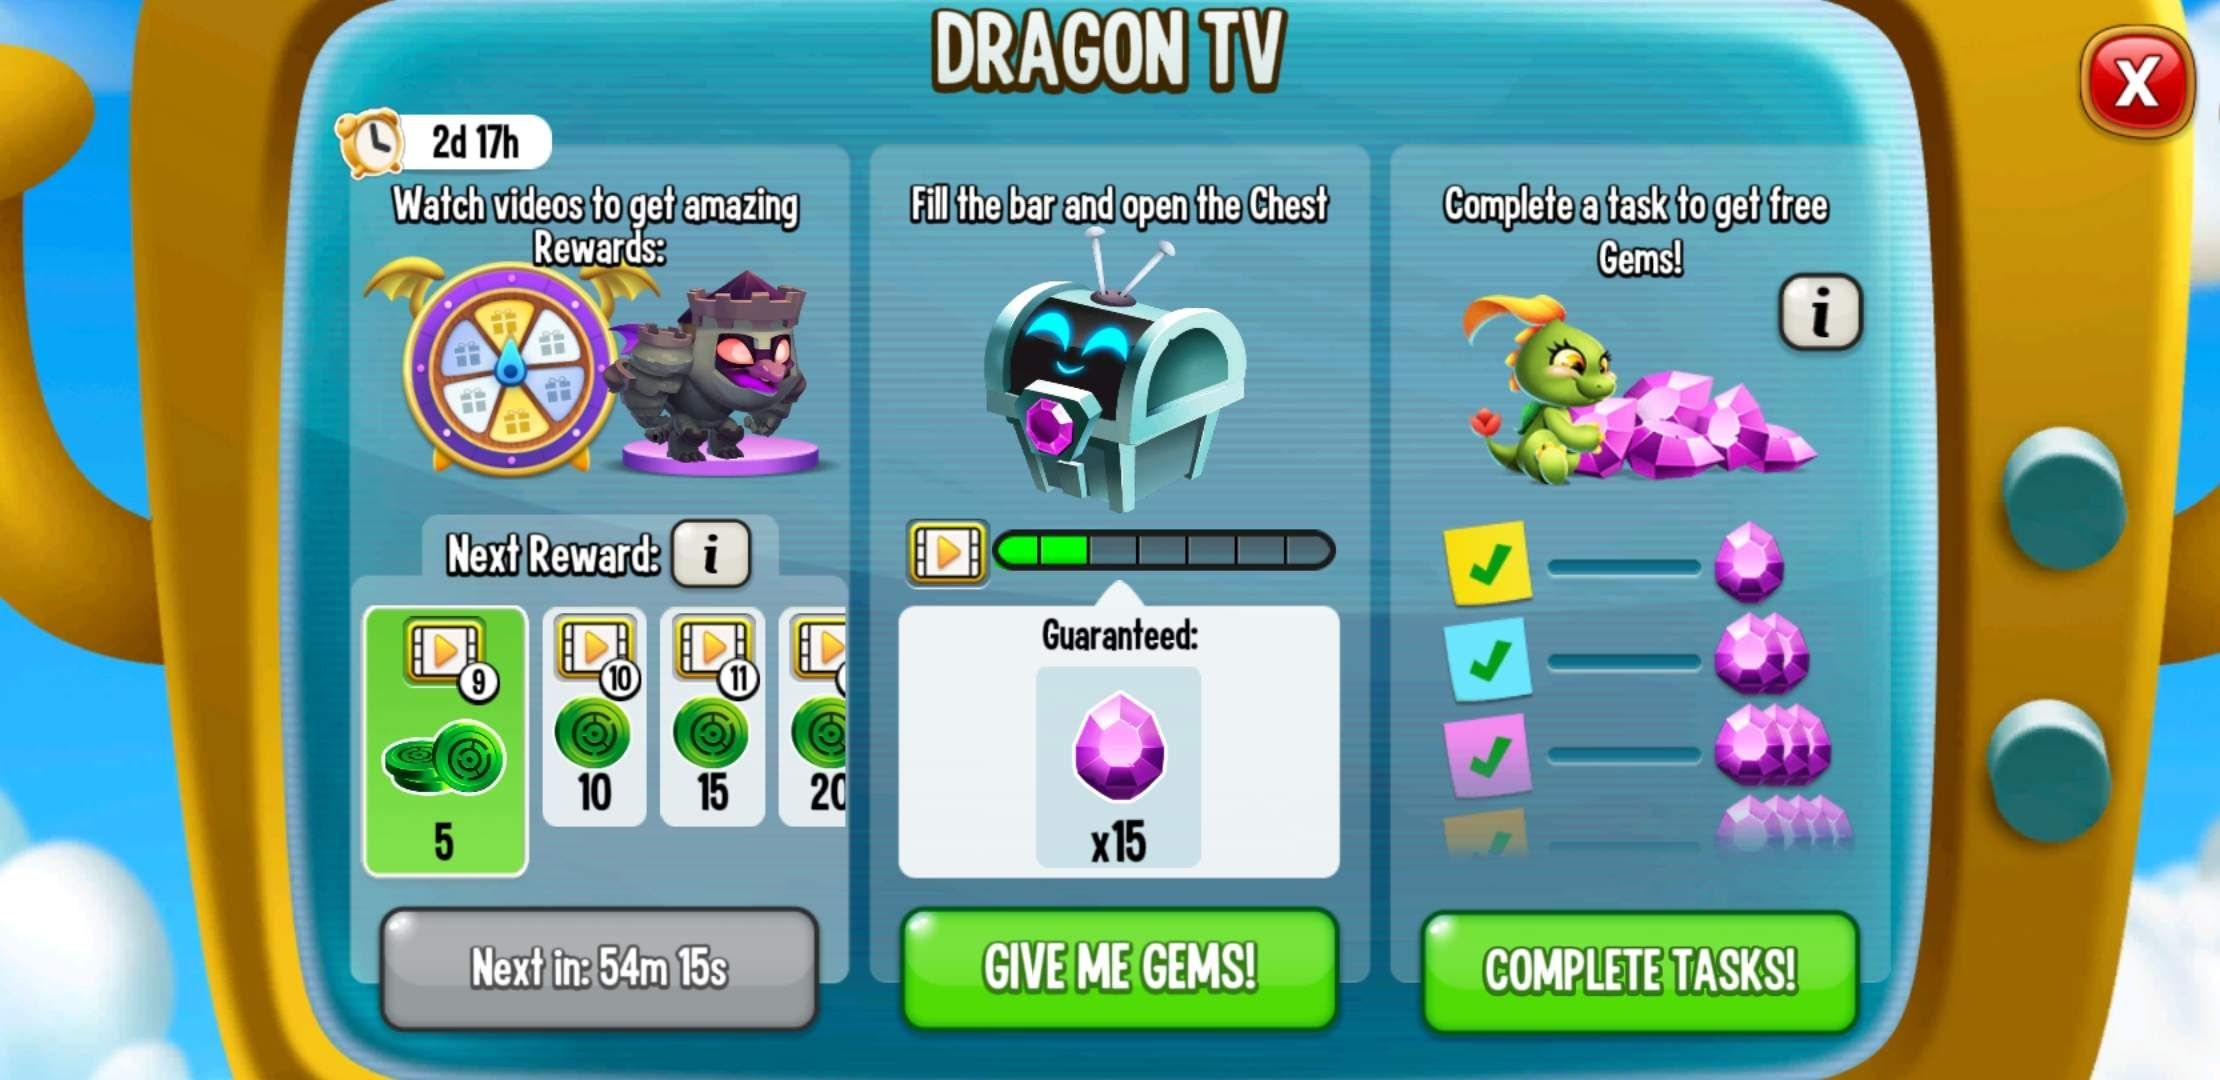 3_1579284536638_011720 me dragon tv.jpg